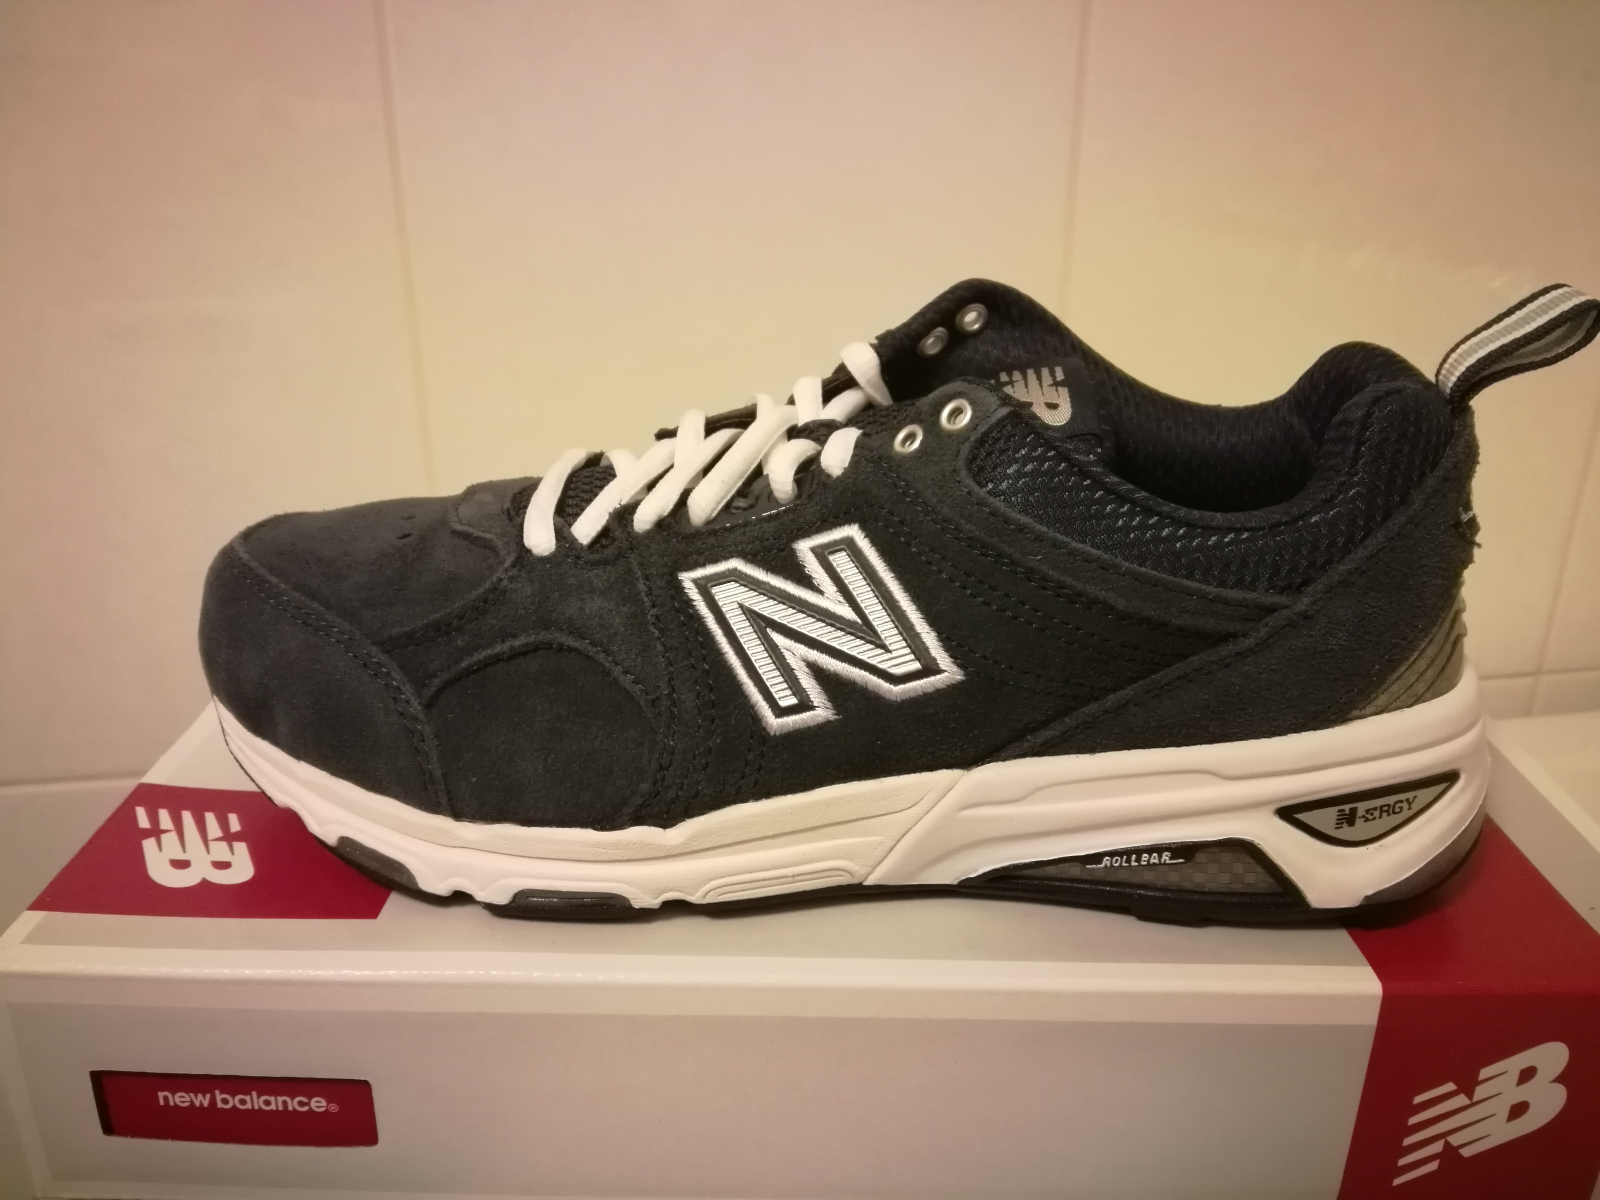 New New New  Damenschuhe New Balance 857 Cross Trainer Sneakers Schuhes - Wide Width - Navy 153927